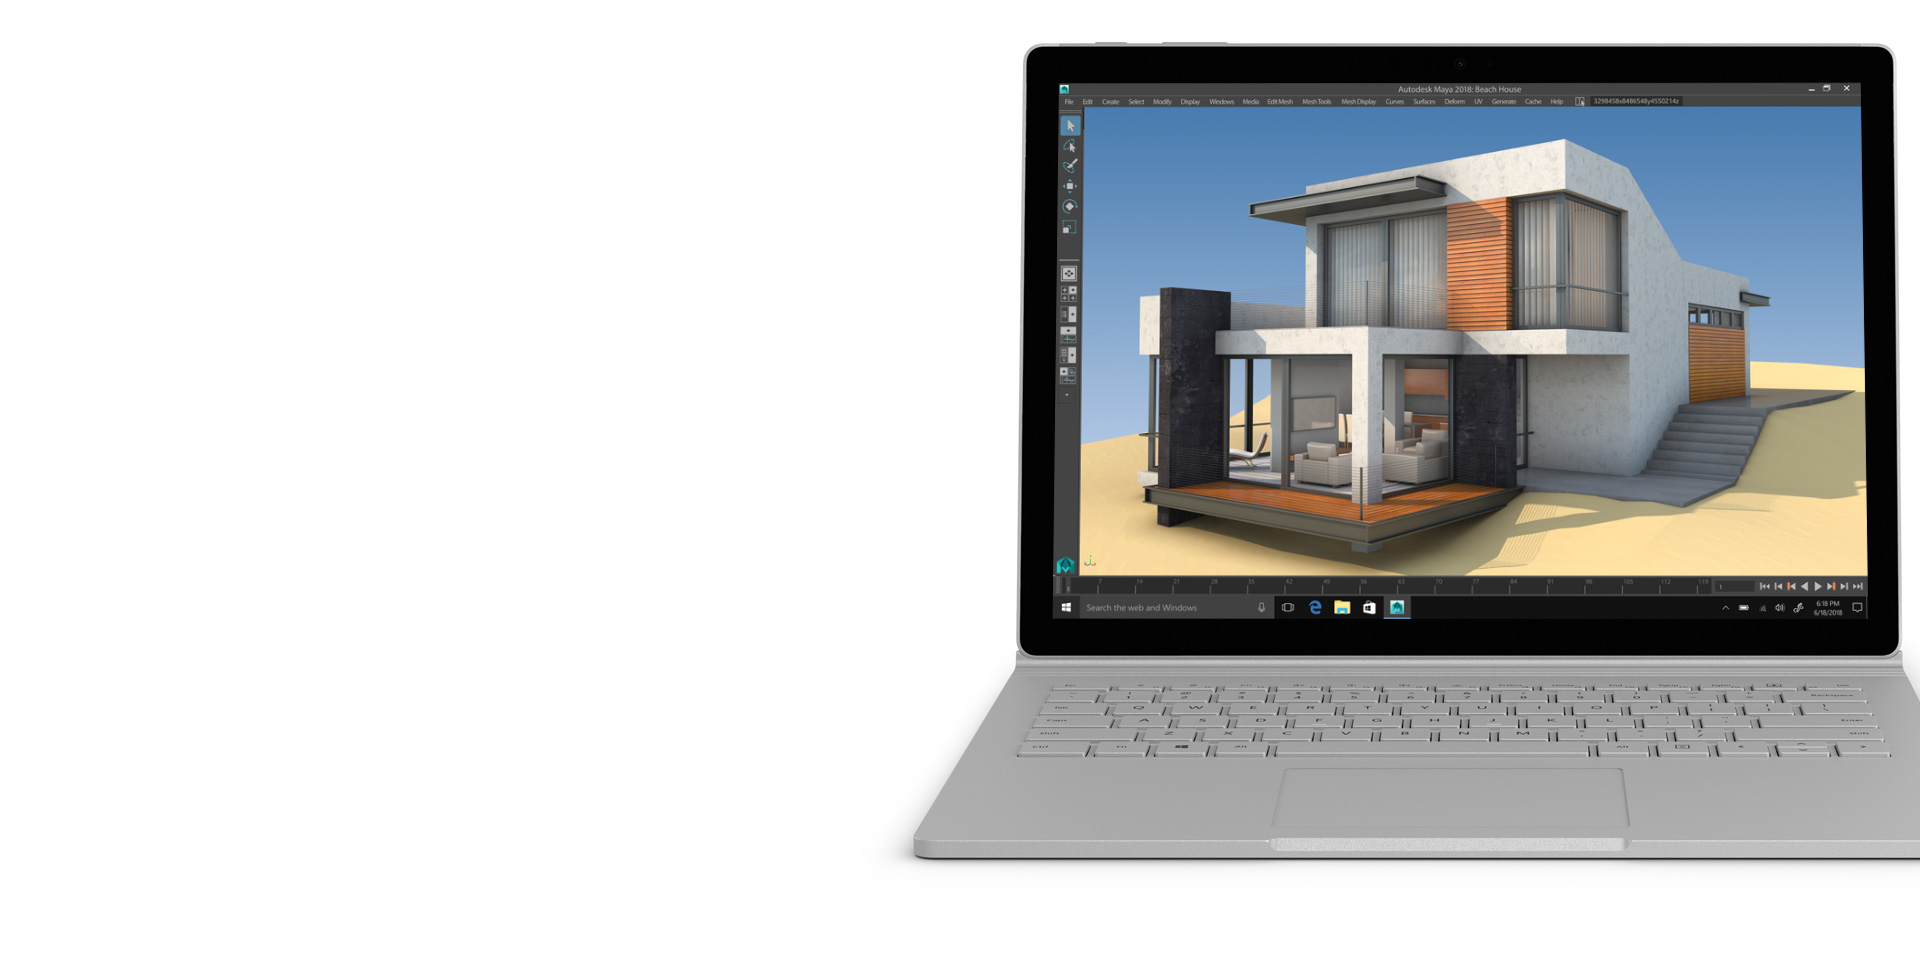 Autodesk Maya no ecrã do Surface Book 2